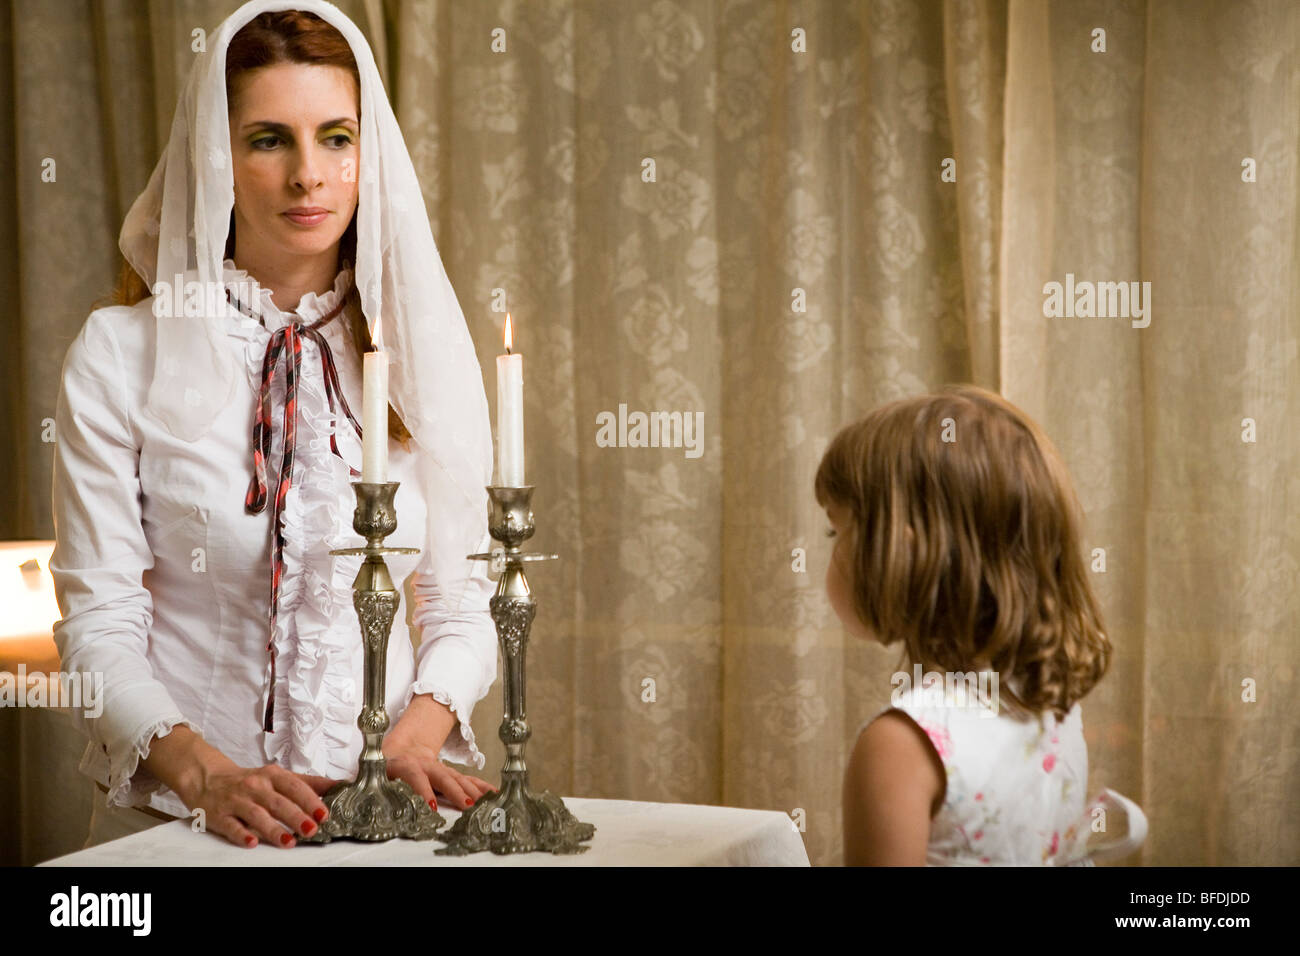 Mother And Daughter Lighting Shabbat Candles.   Stock Image